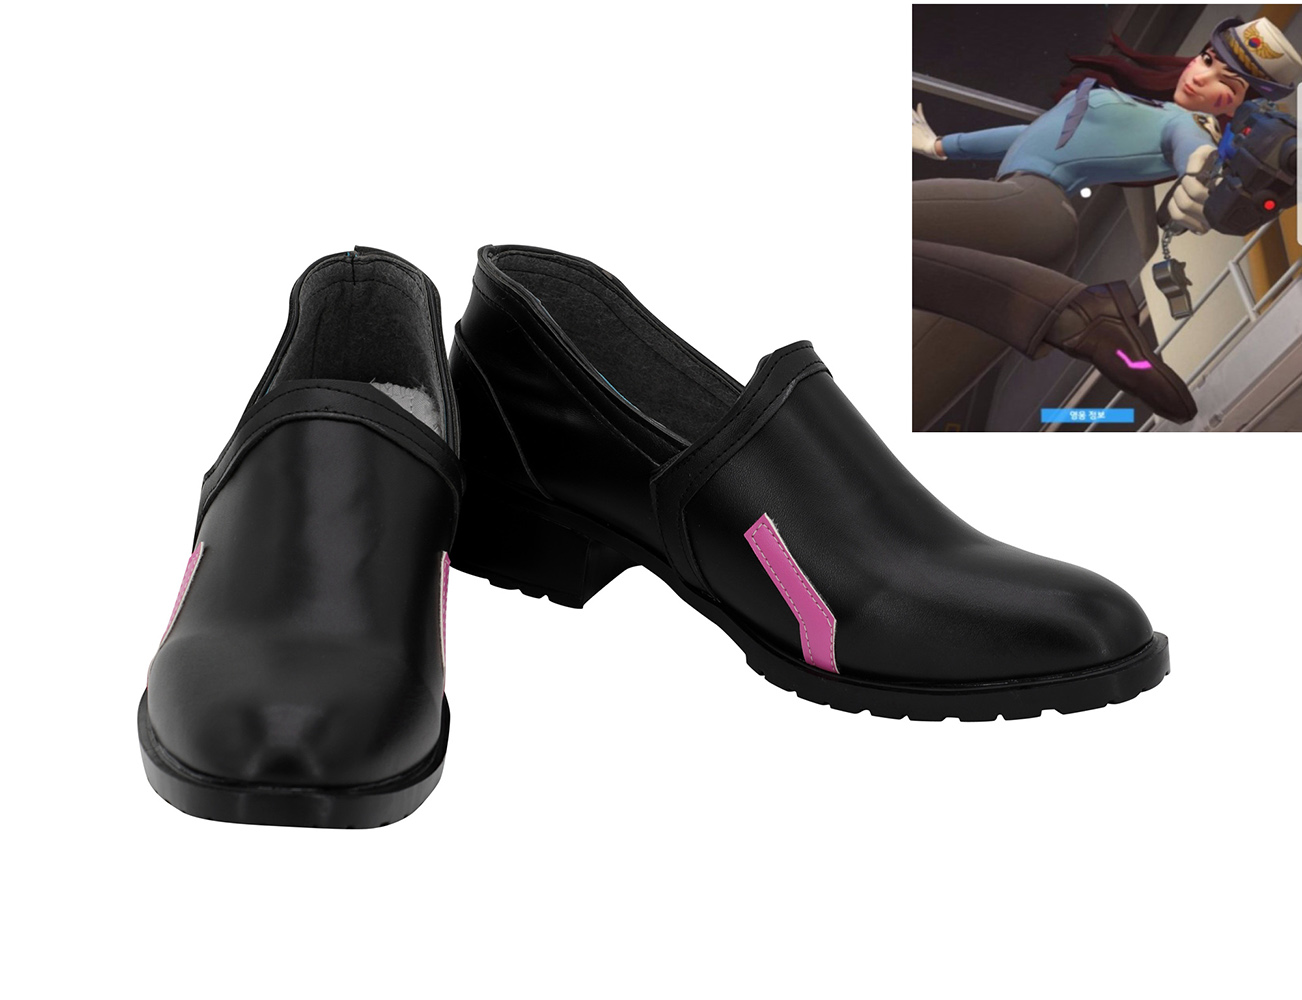 OW <font><b>DVA</b></font> Policewoman Skin Cosplay <font><b>Shoes</b></font> Black Boots Custom Made Any Size image